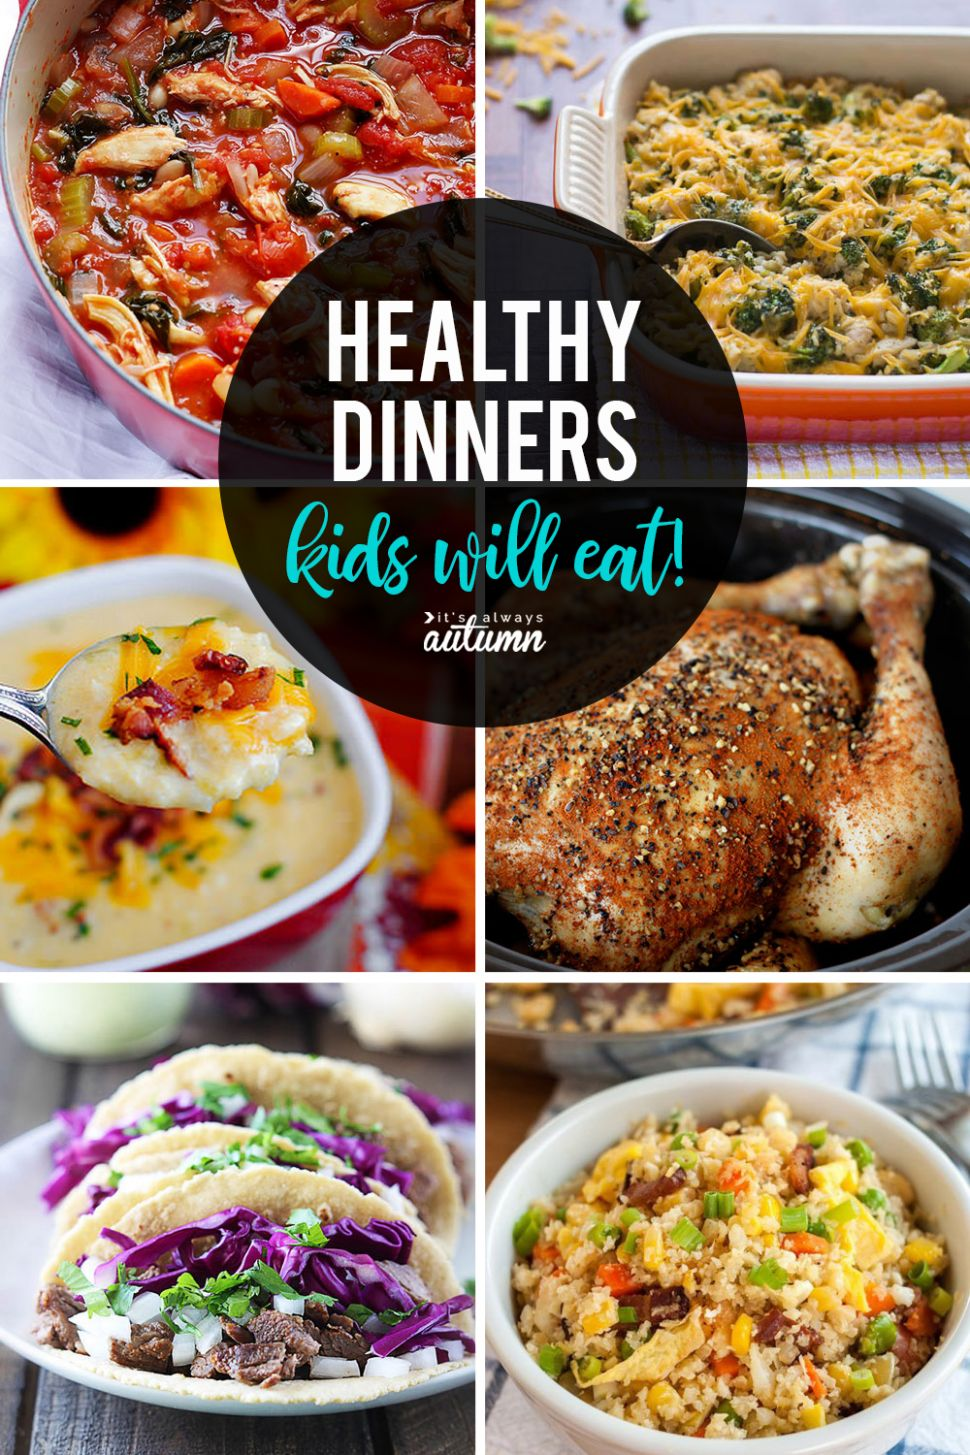 12 healthy easy recipes your kids will actually want to eat - It's ...